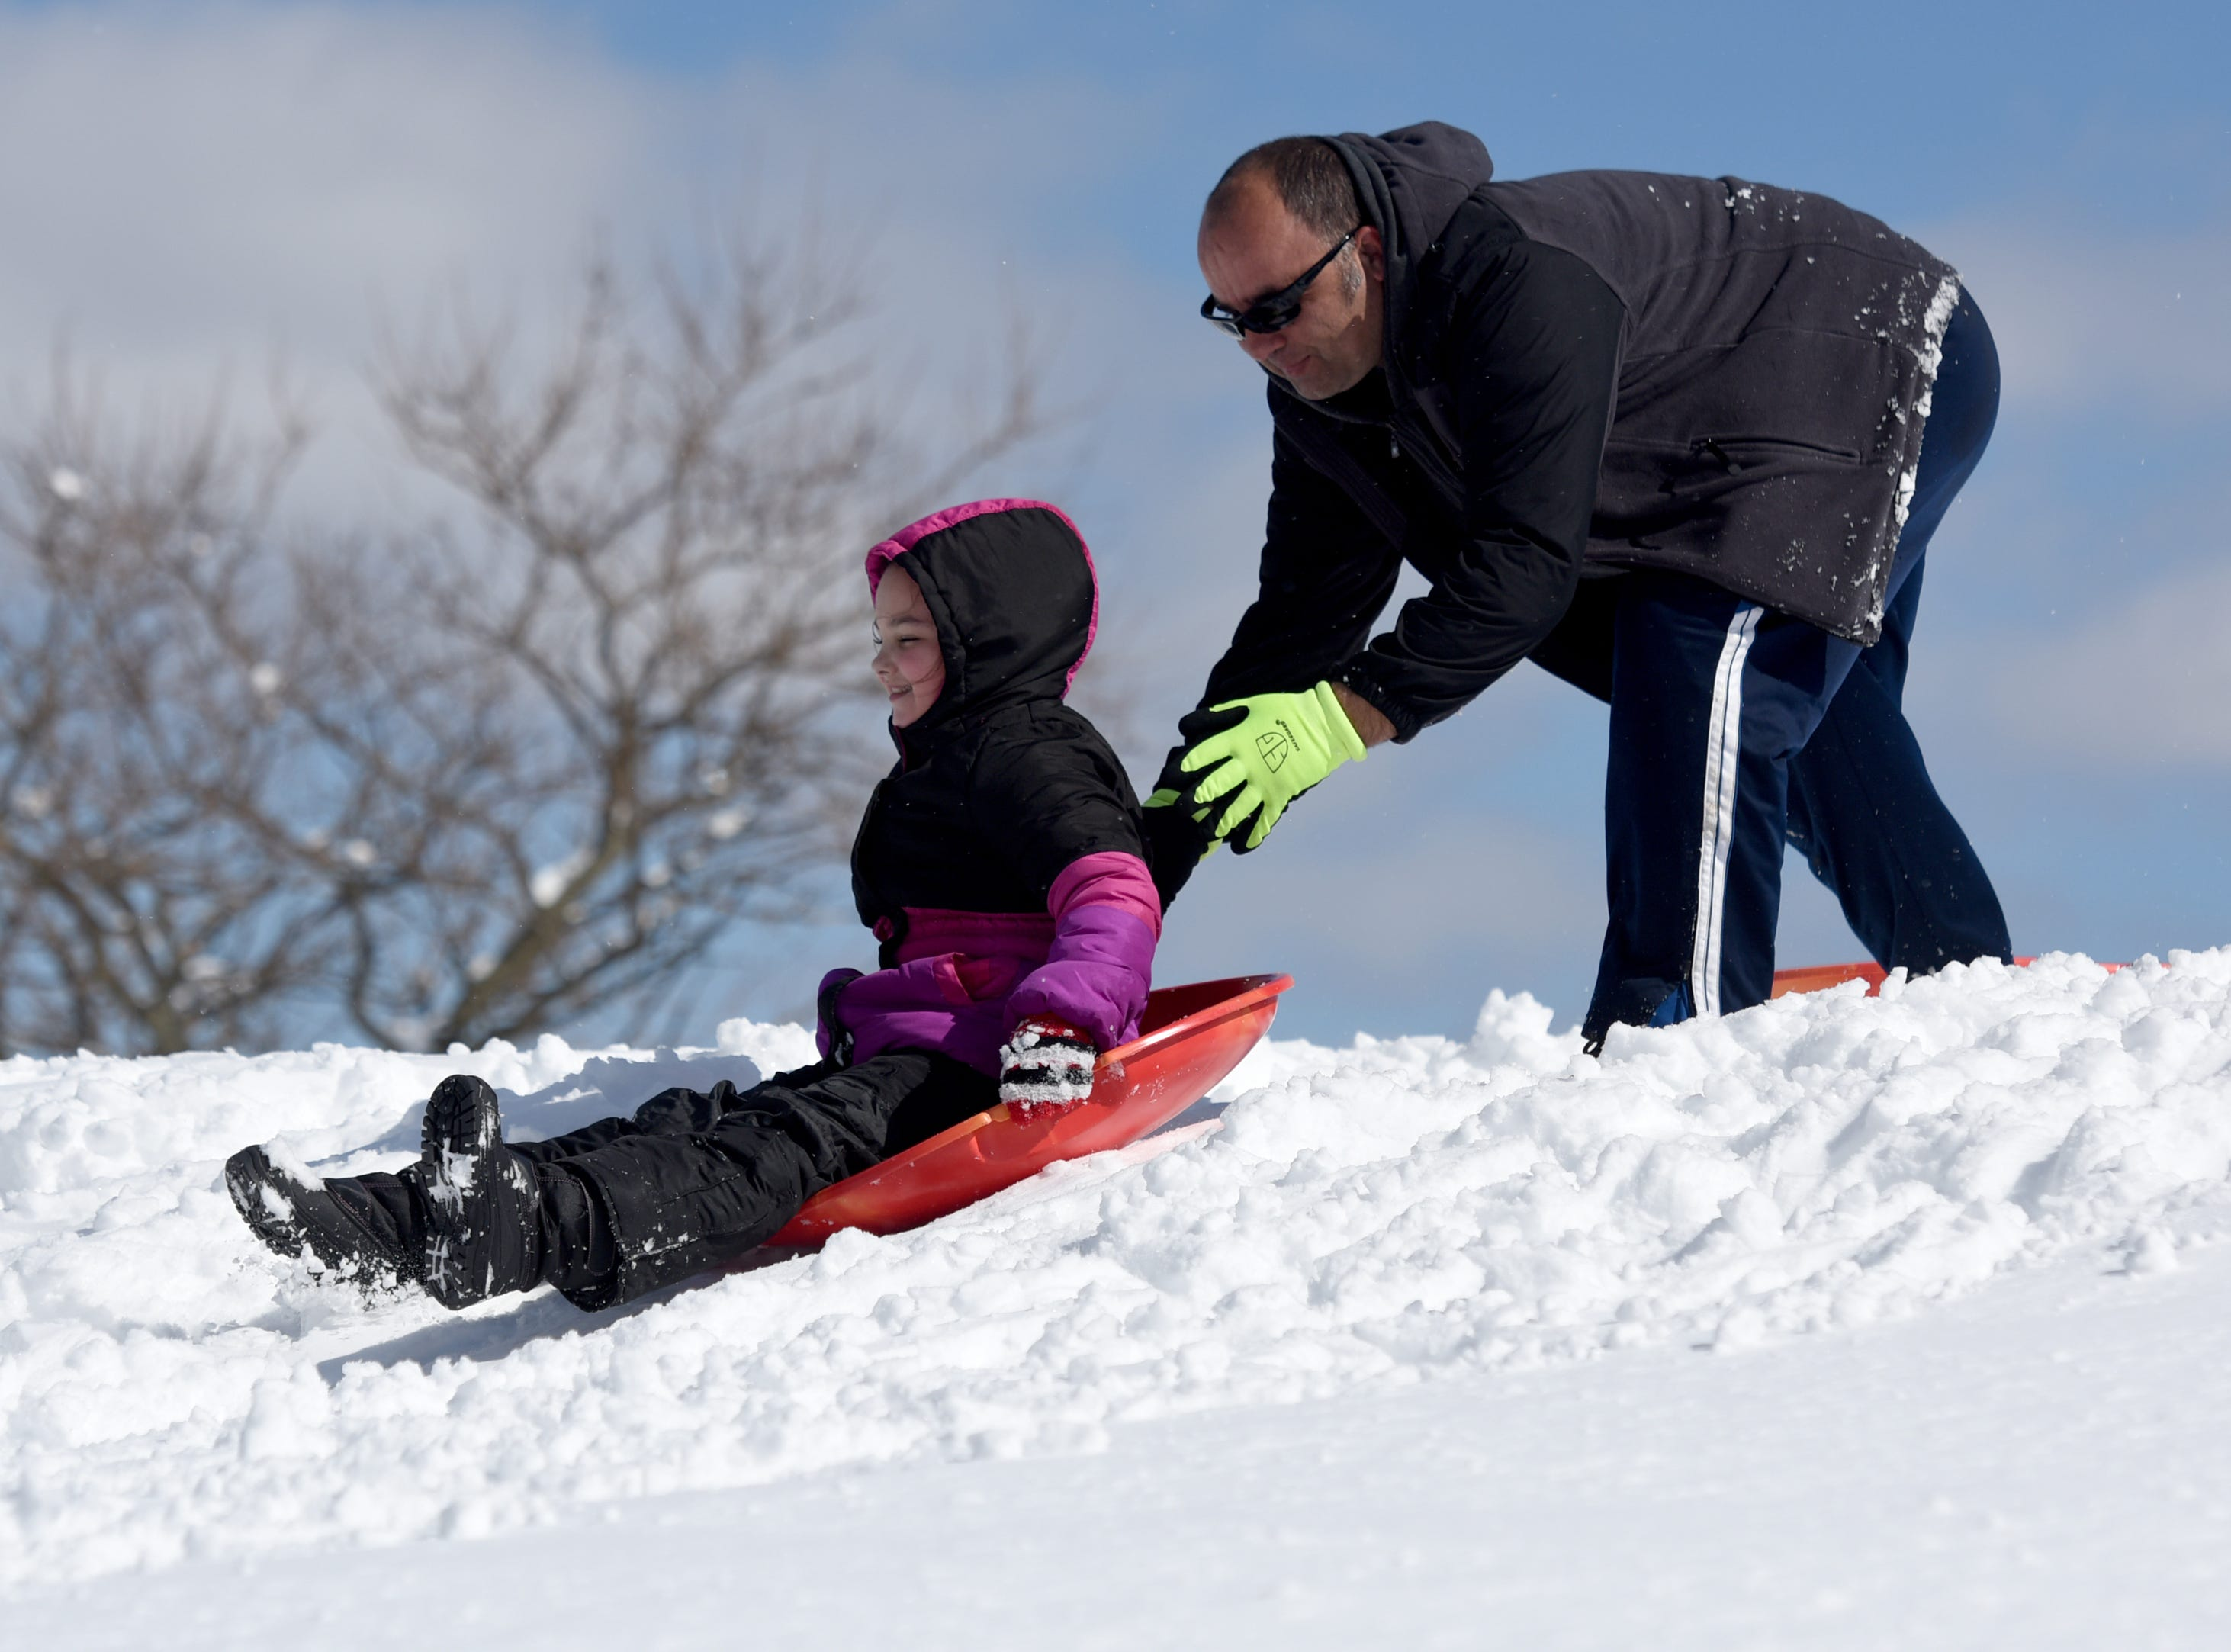 Mustaf Gashi gives his daughter Albcona Gashi 8, a push while sledding at Garret Mountain Reservation on Monday, March 4, 2019.